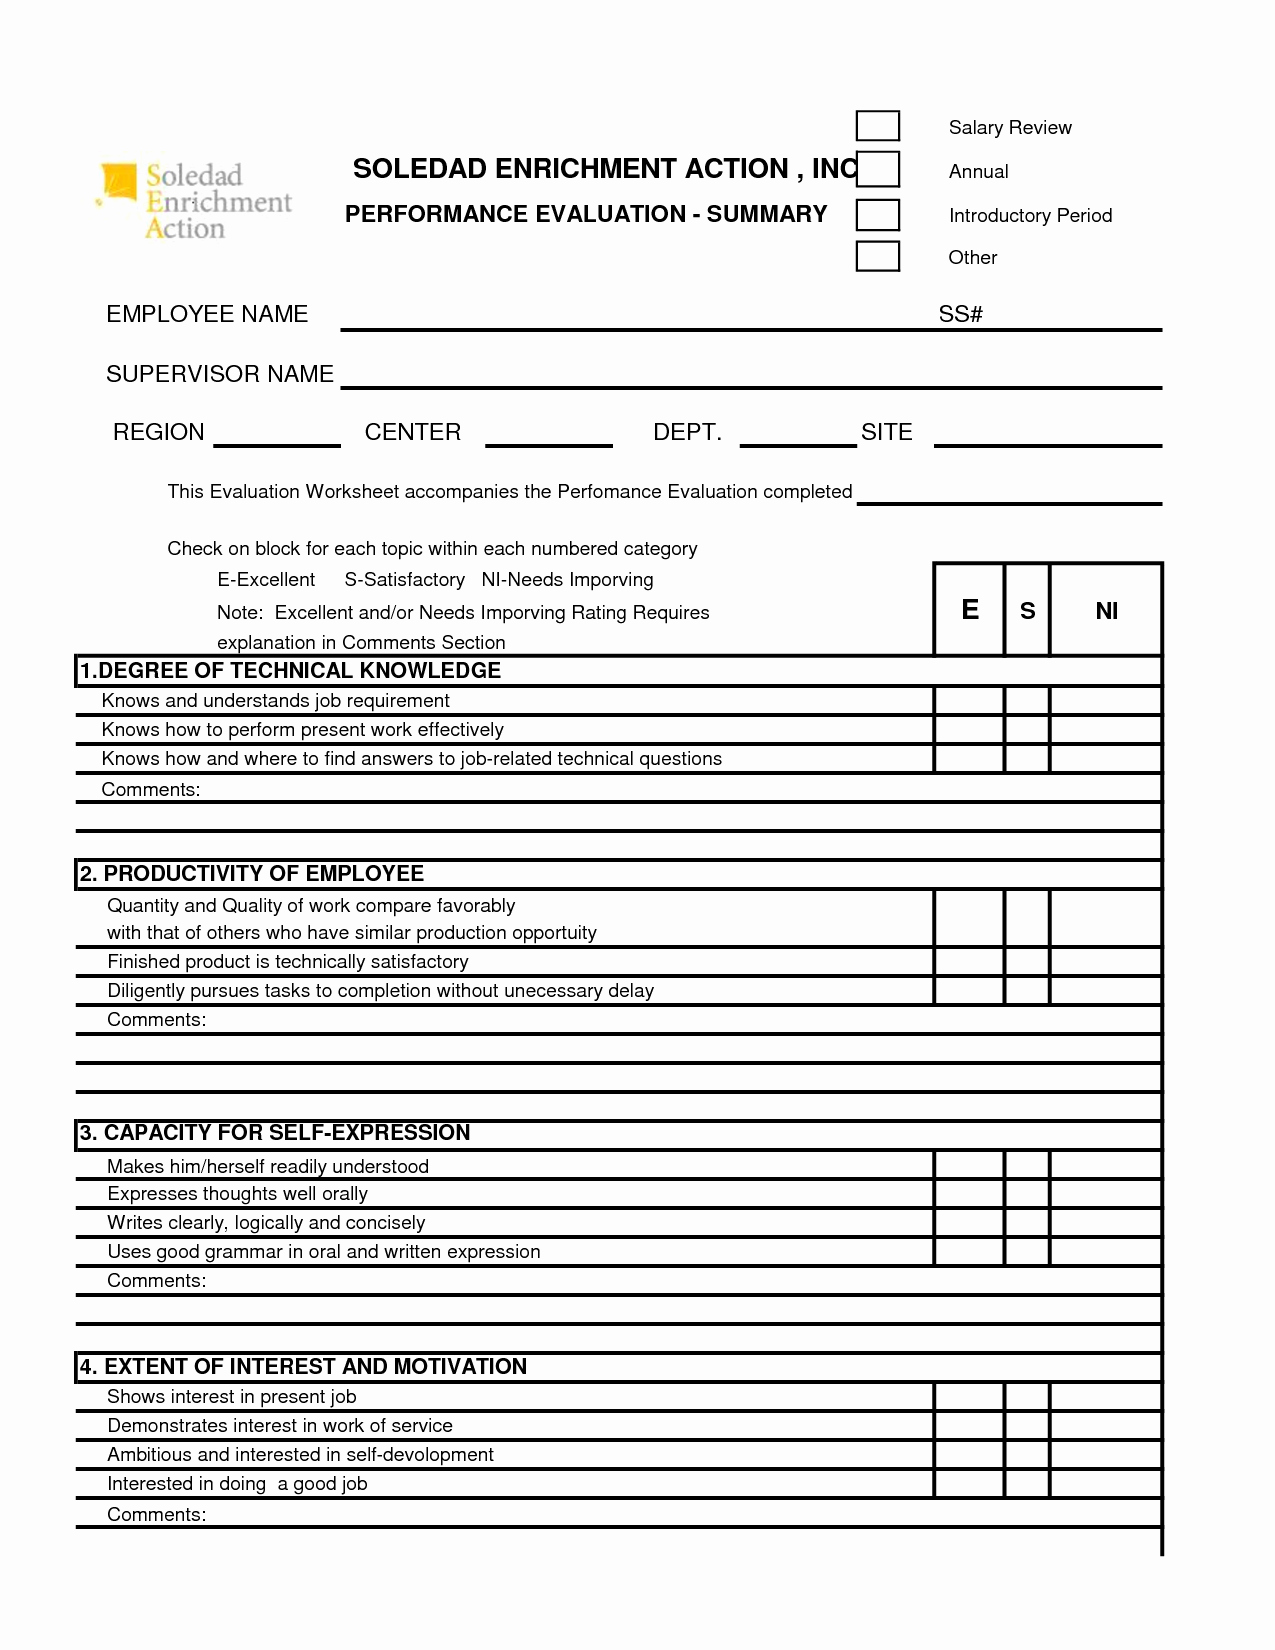 Employee Performance Appraisal form Template Fresh Free 360 Performance Appraisal form Google Search